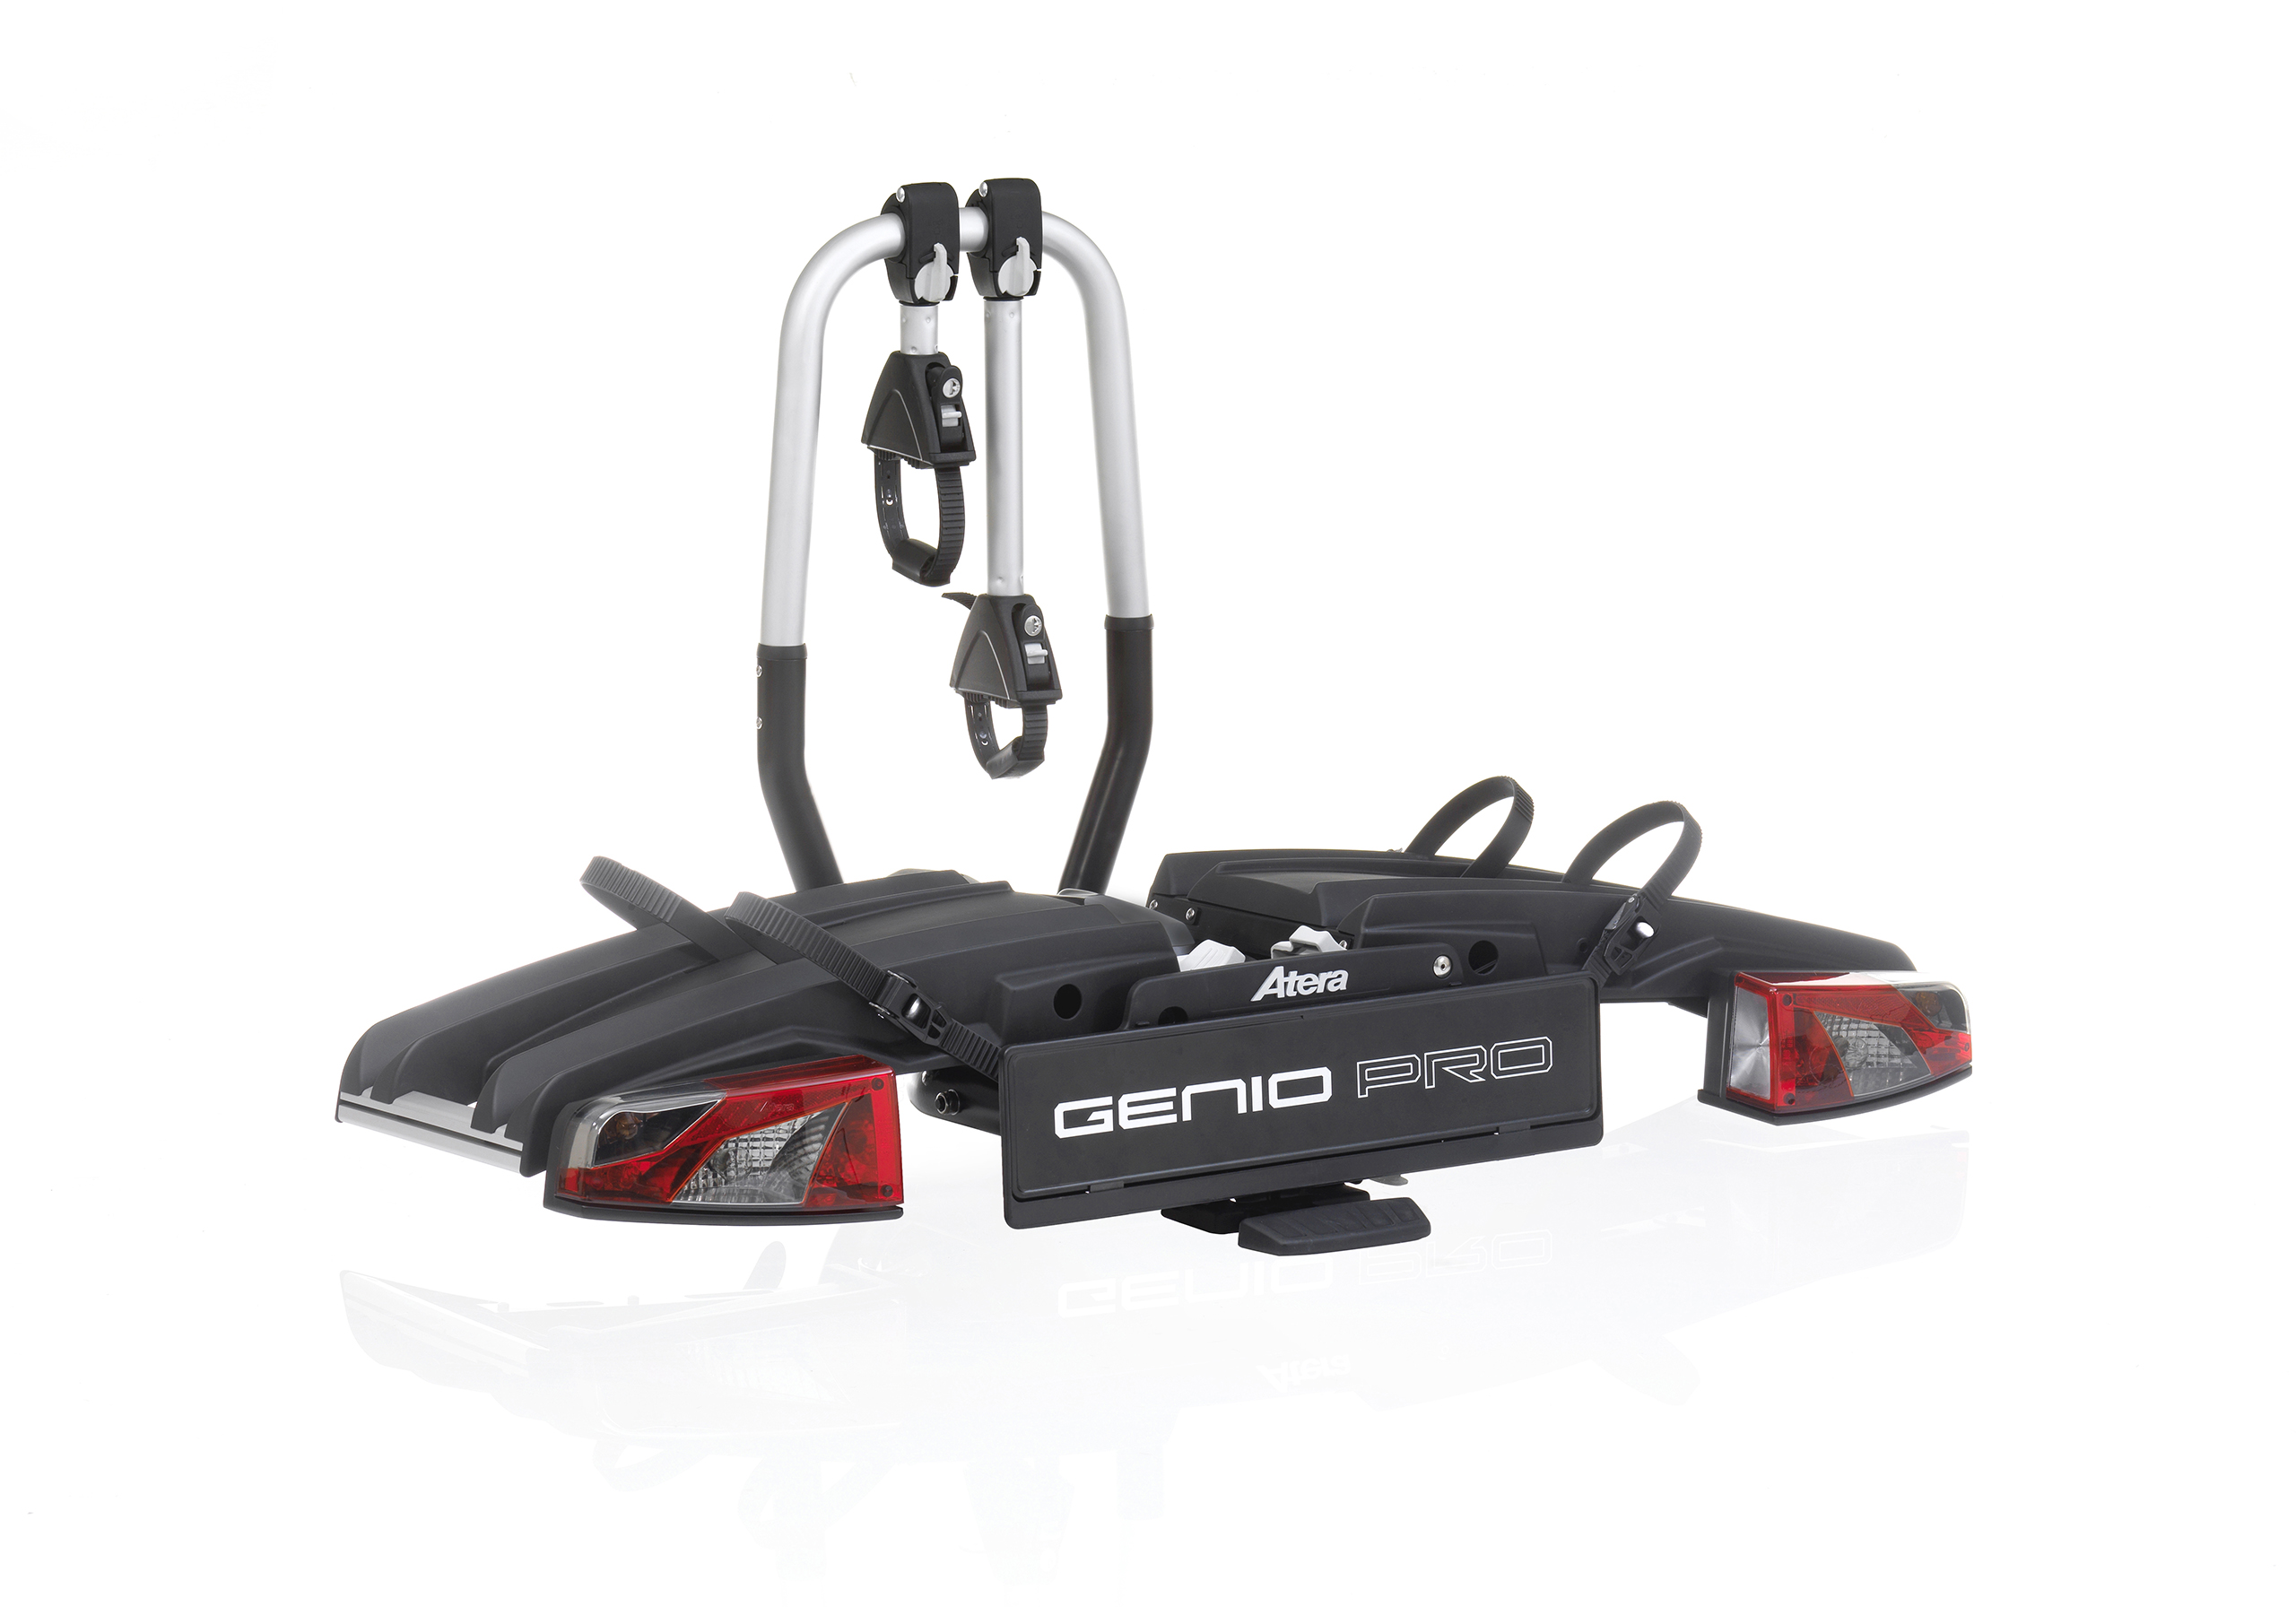 :Atera GENIO PRO folding bike carrier (2 bikes) no. 022780